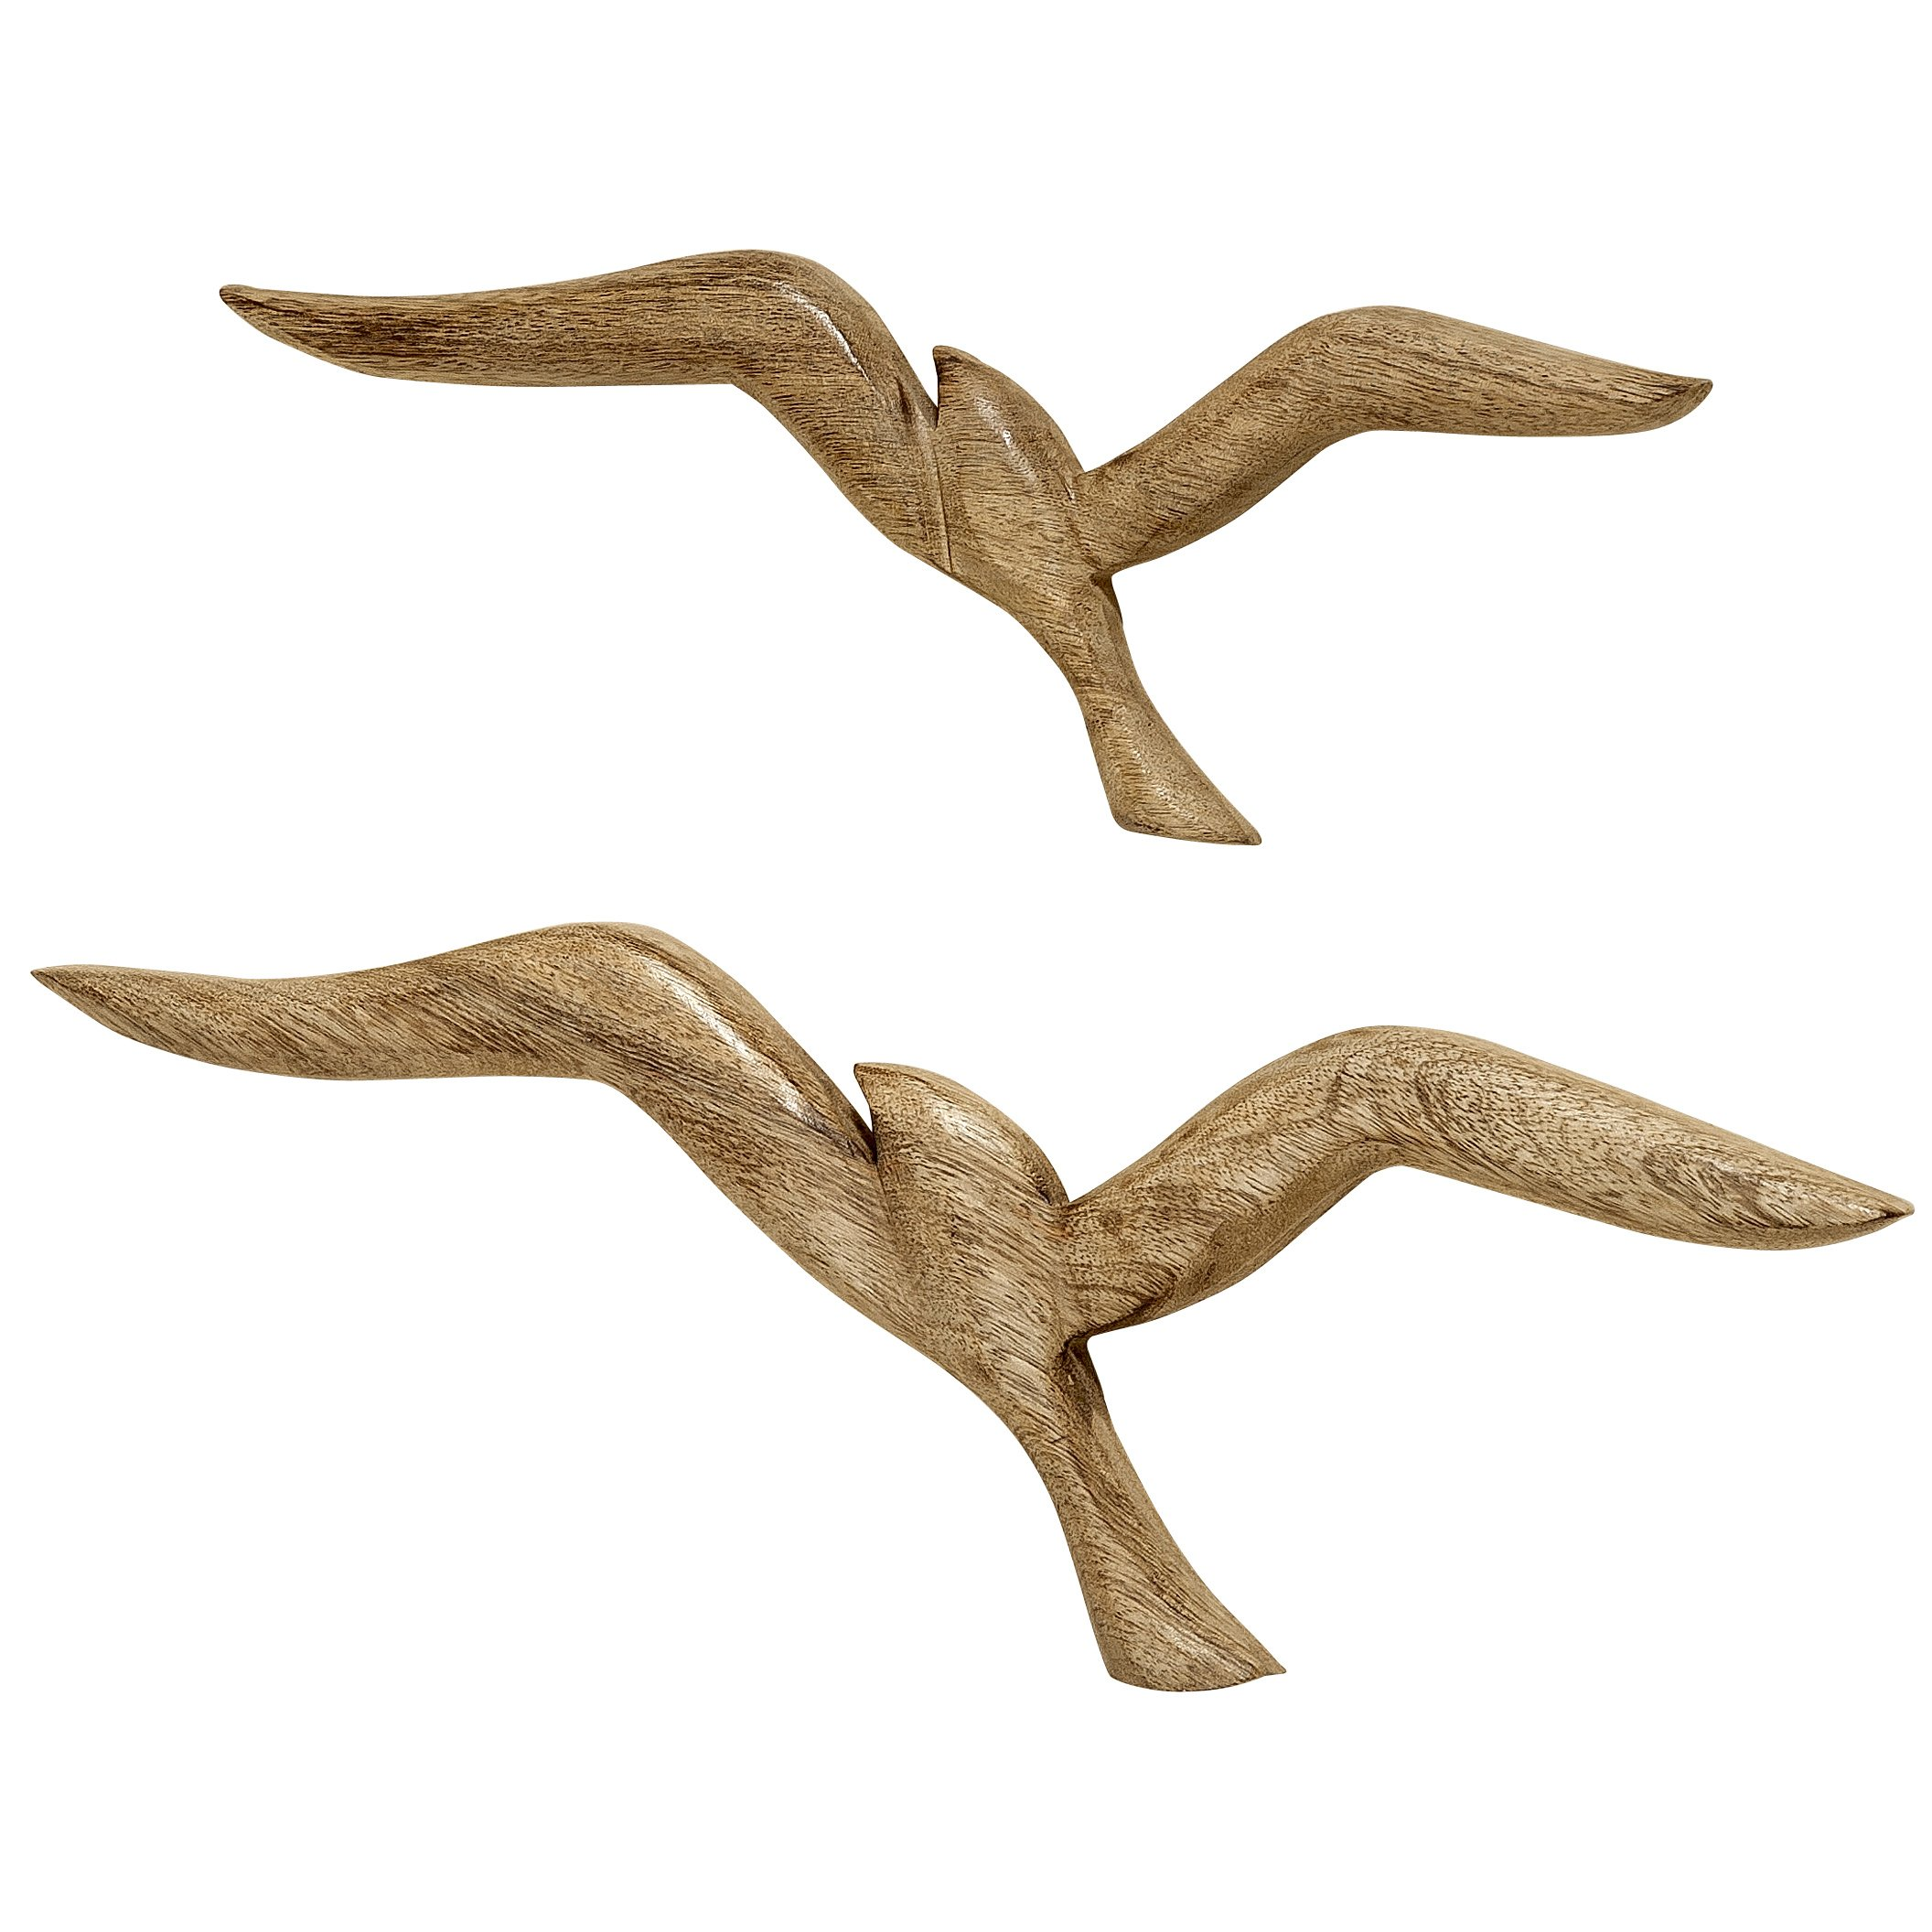 Whole House Worlds The Americana Flying Sea Gulls Wall Sculptures, Curated Set of 2, Handcrafted, Carved of Solid Mango Wood, Each Over 1 Foot Long (18 x 6 1/4 and 14 1/4 x 5 Inches) By WHW